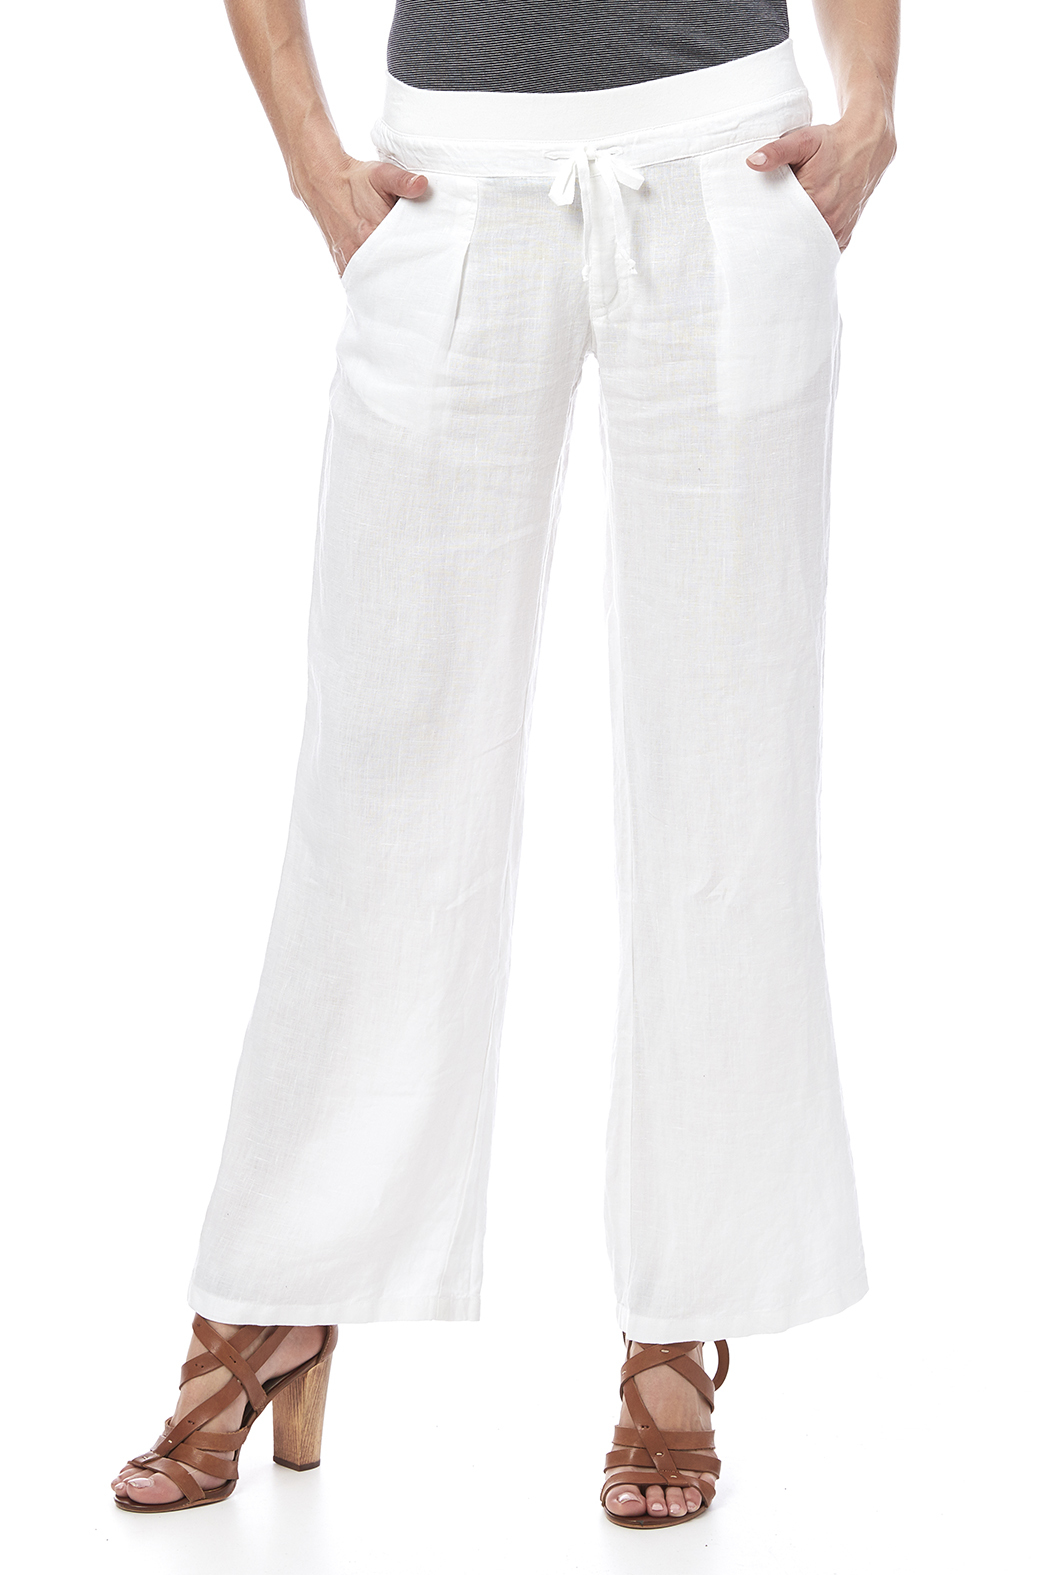 Fresh Laundry White Beachy Pant - Front Cropped Image